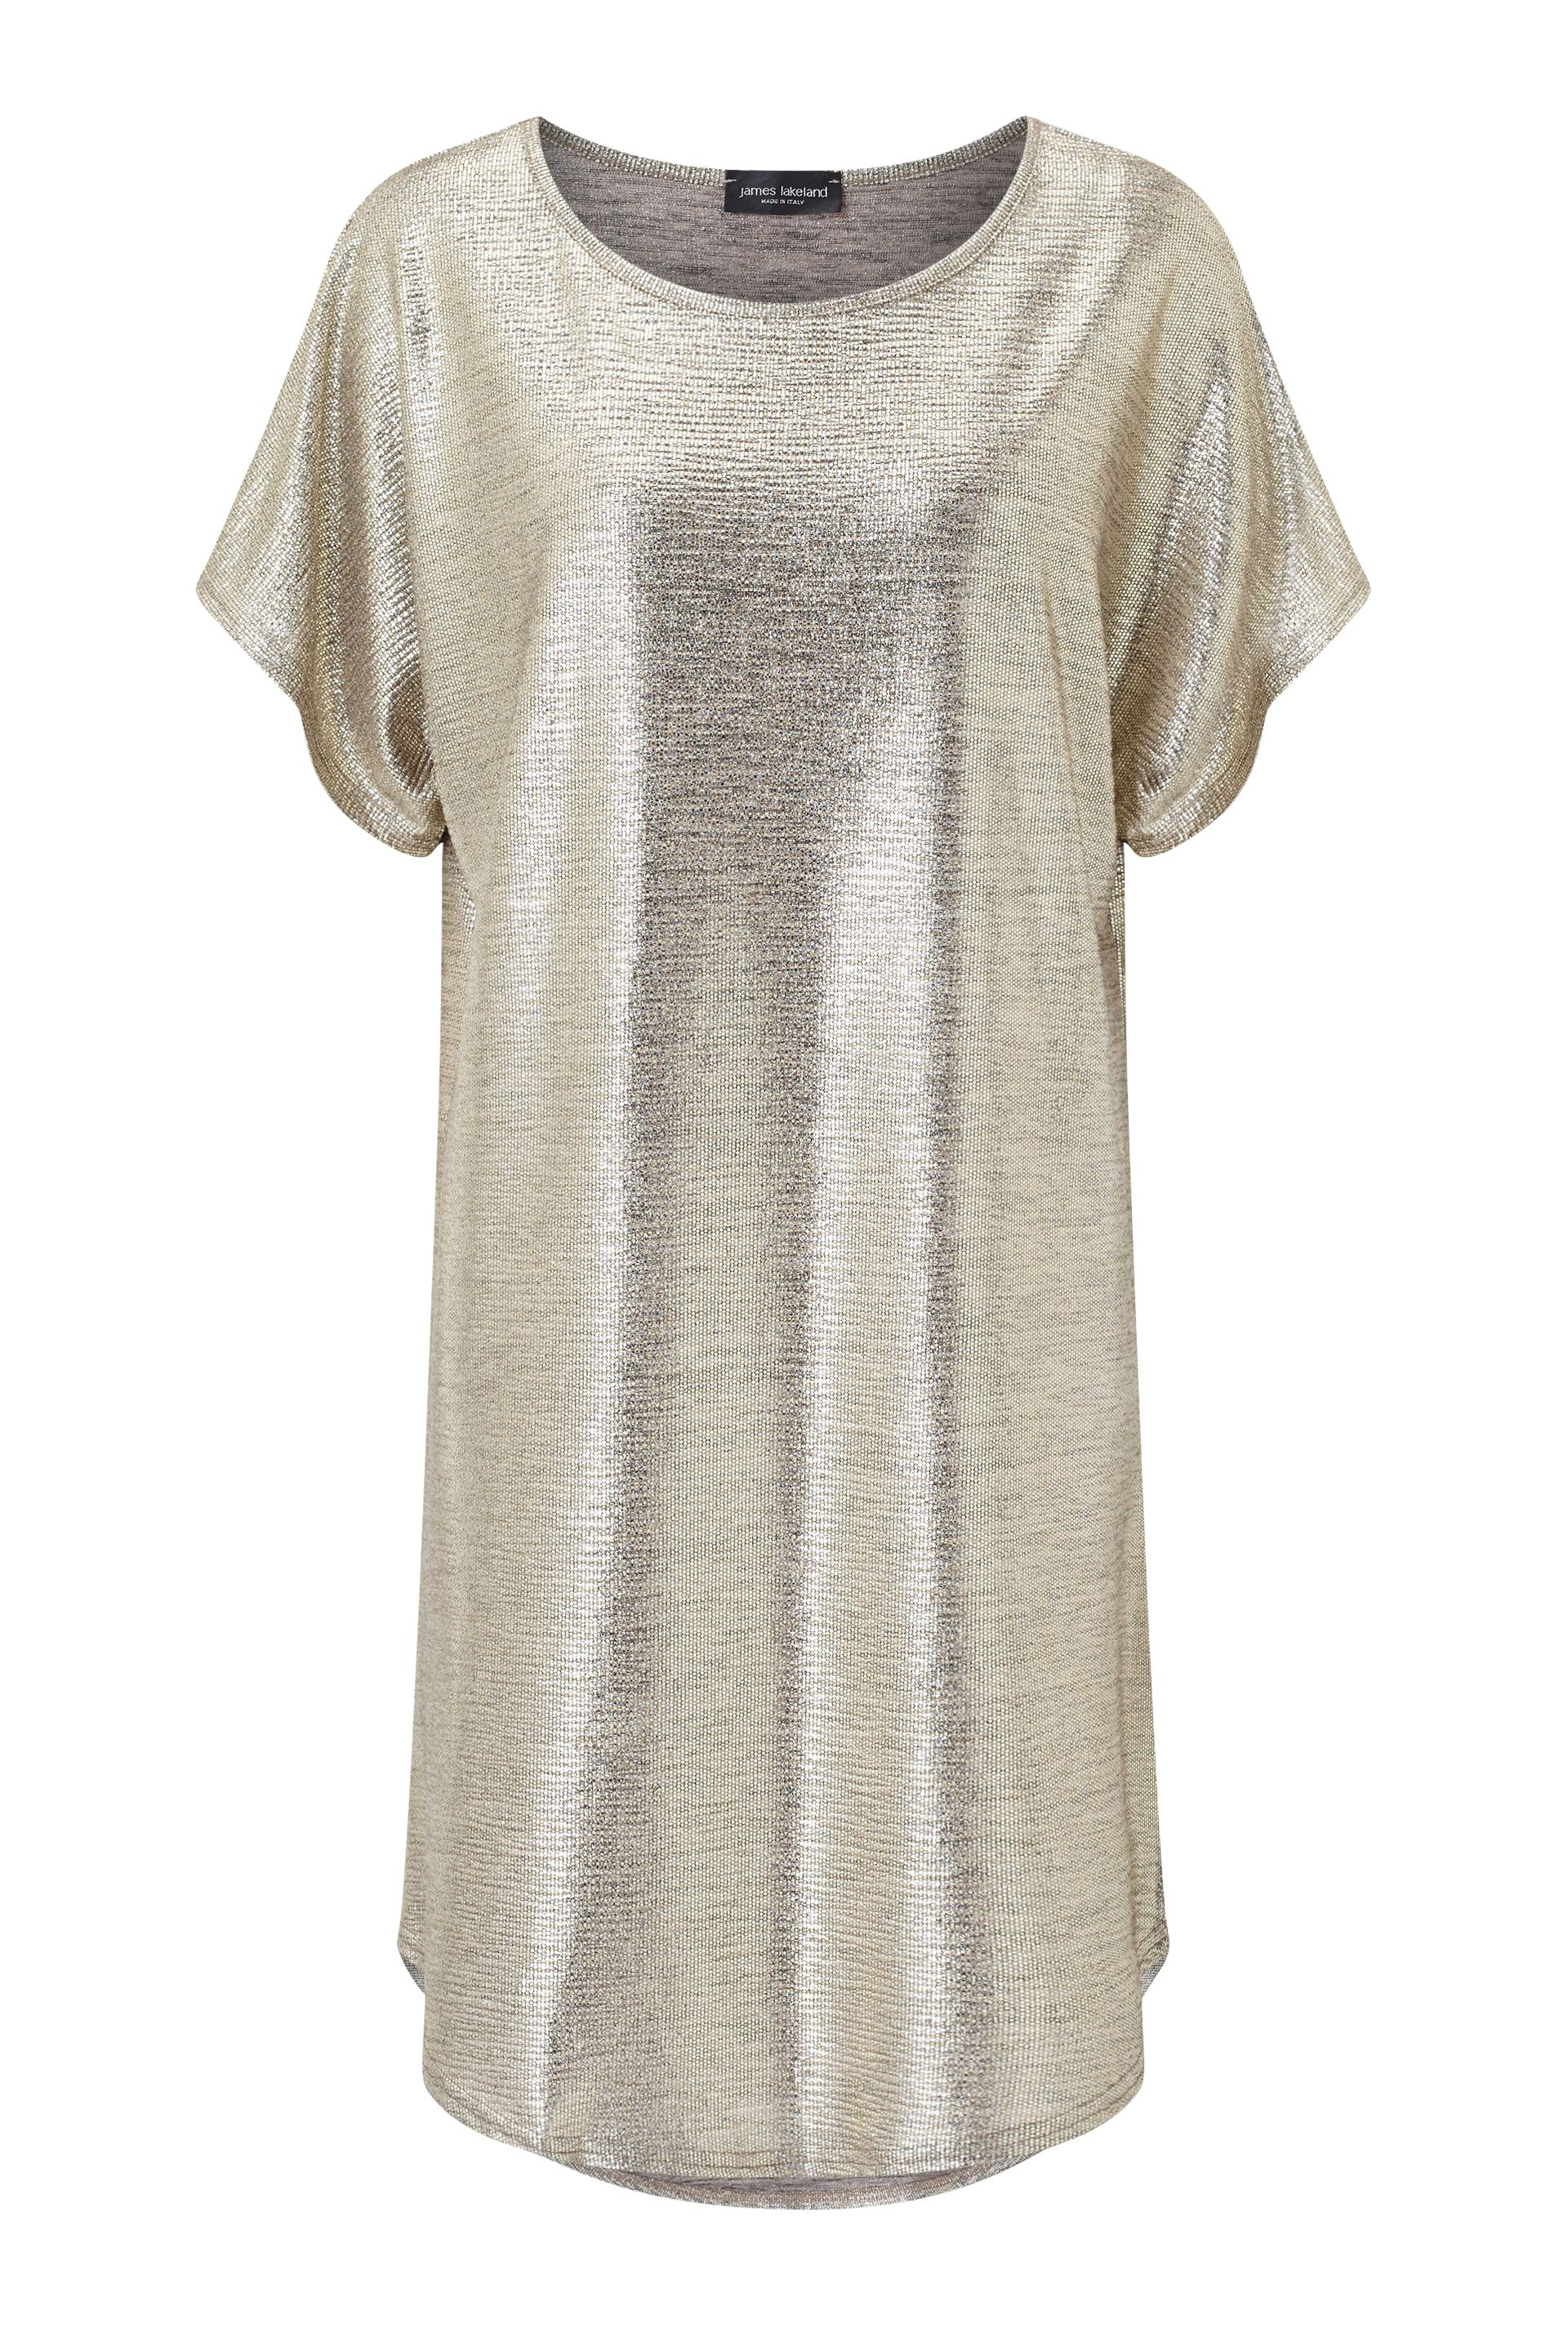 James Lakeland Metallic Tunic Dress, Gold Silverlic